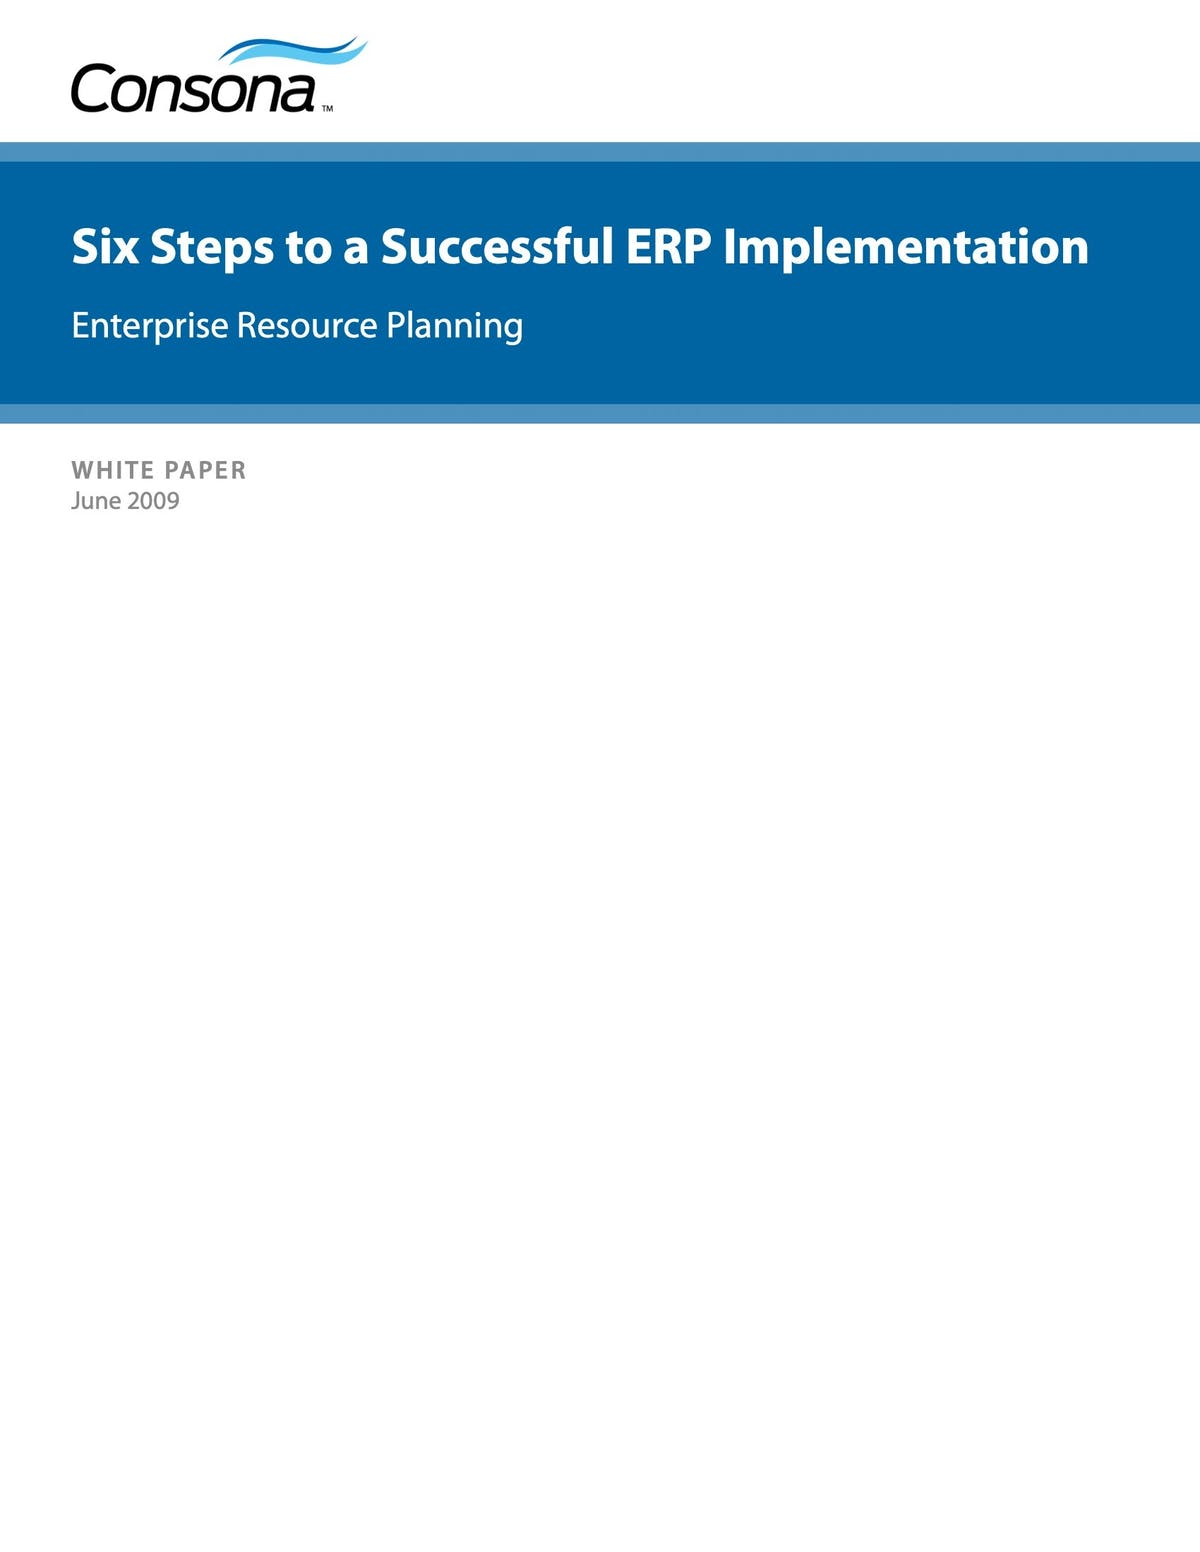 Intuitive ERP White Paper - Six Steps To A Successful ERP Implementation